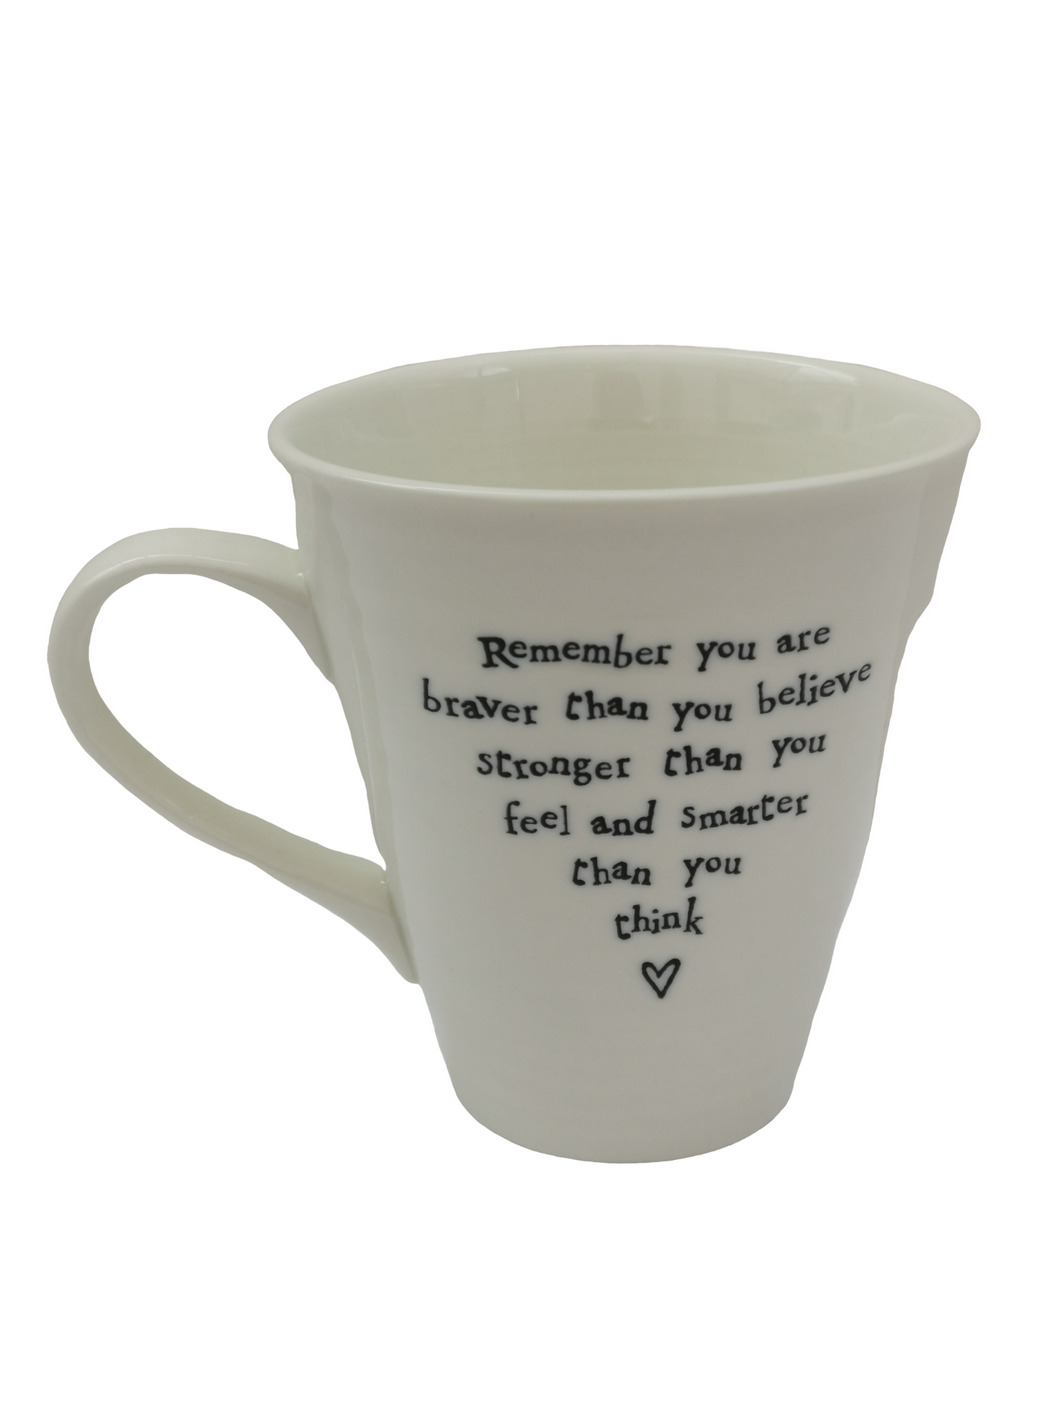 East Of India White Porcelain Mug - Remember You Are